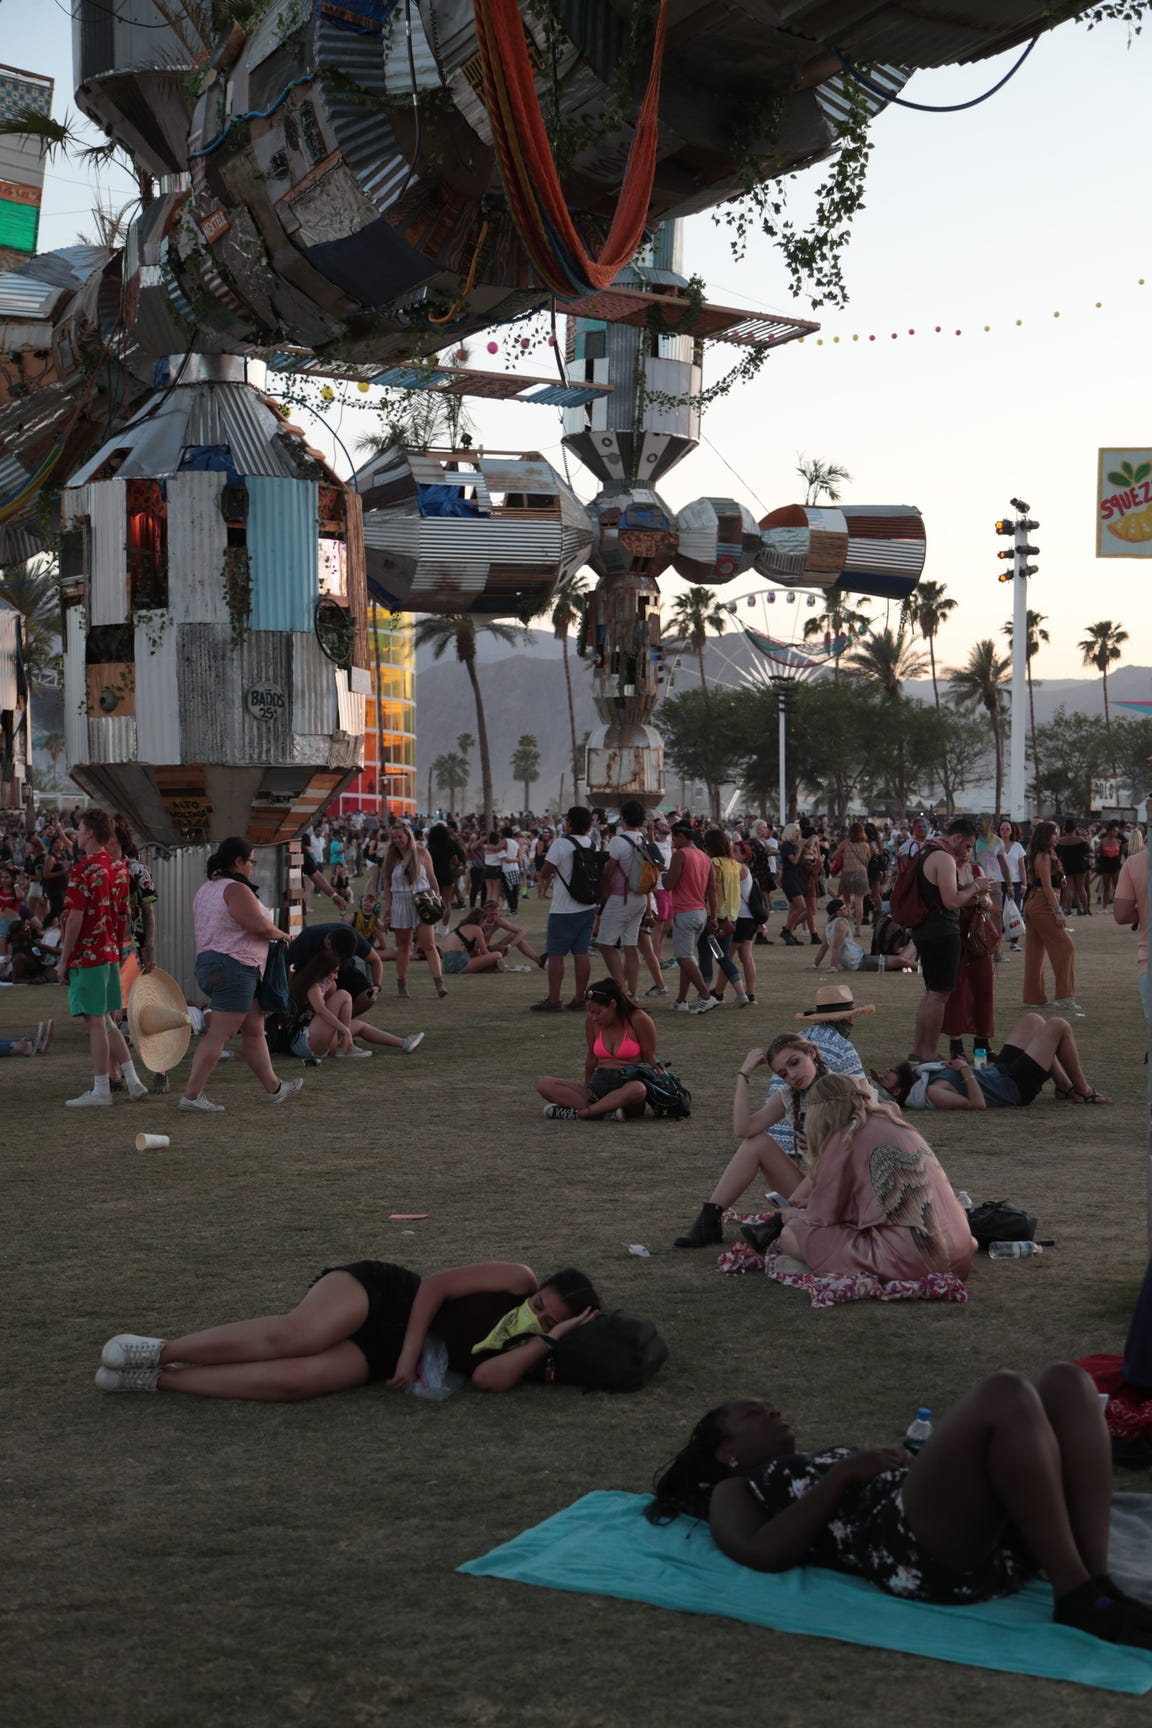 Festivalgoers relax underneath the Palm-3 World Station at the Coachella Valley Music and Arts Festival at the Empire Polo Club in Indio, Calif., April 22, 2018.